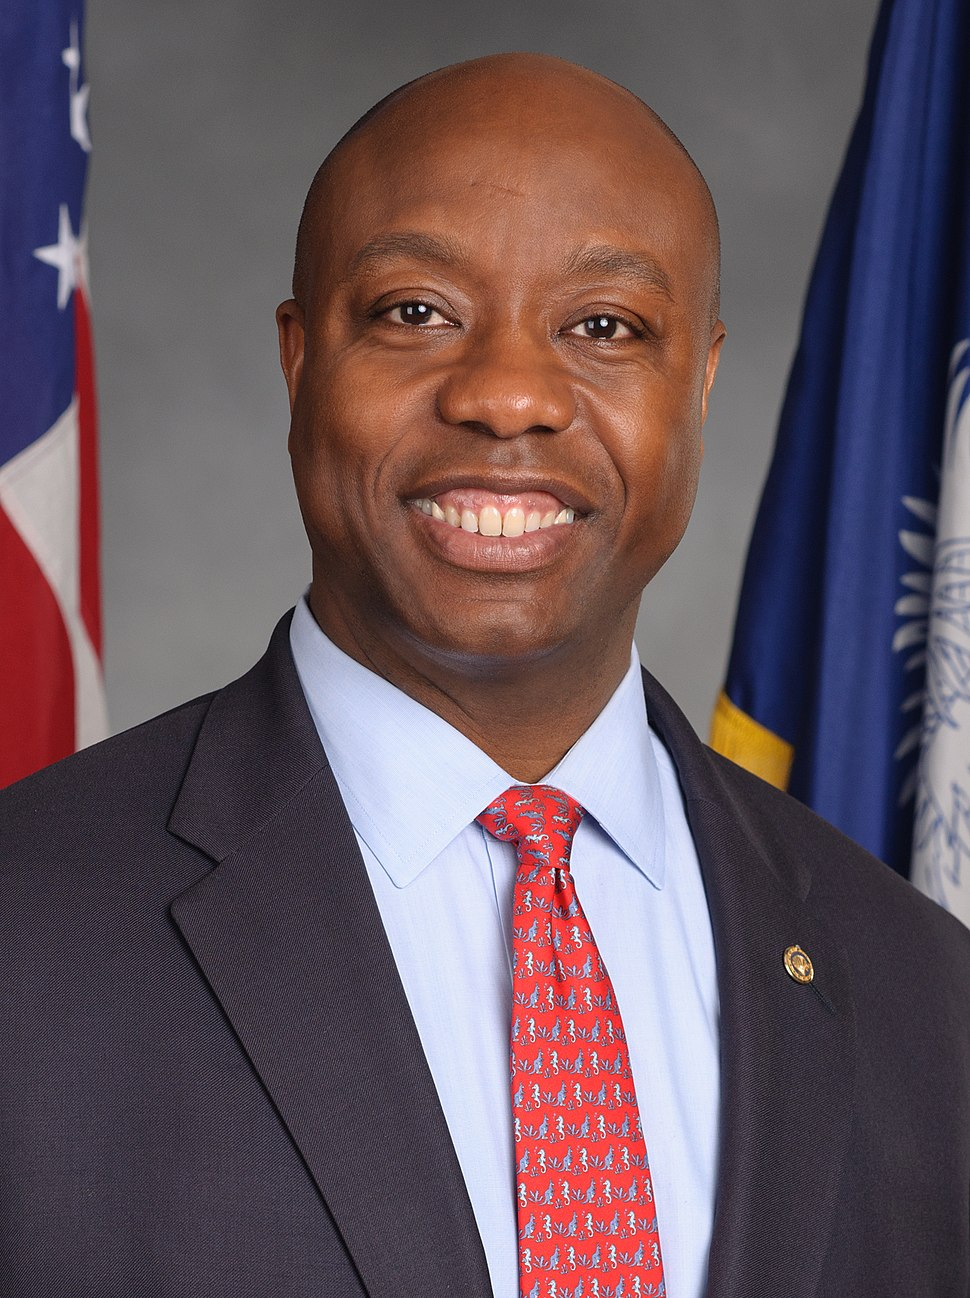 Tim Scott, official portrait, 113th Congress (cropped)